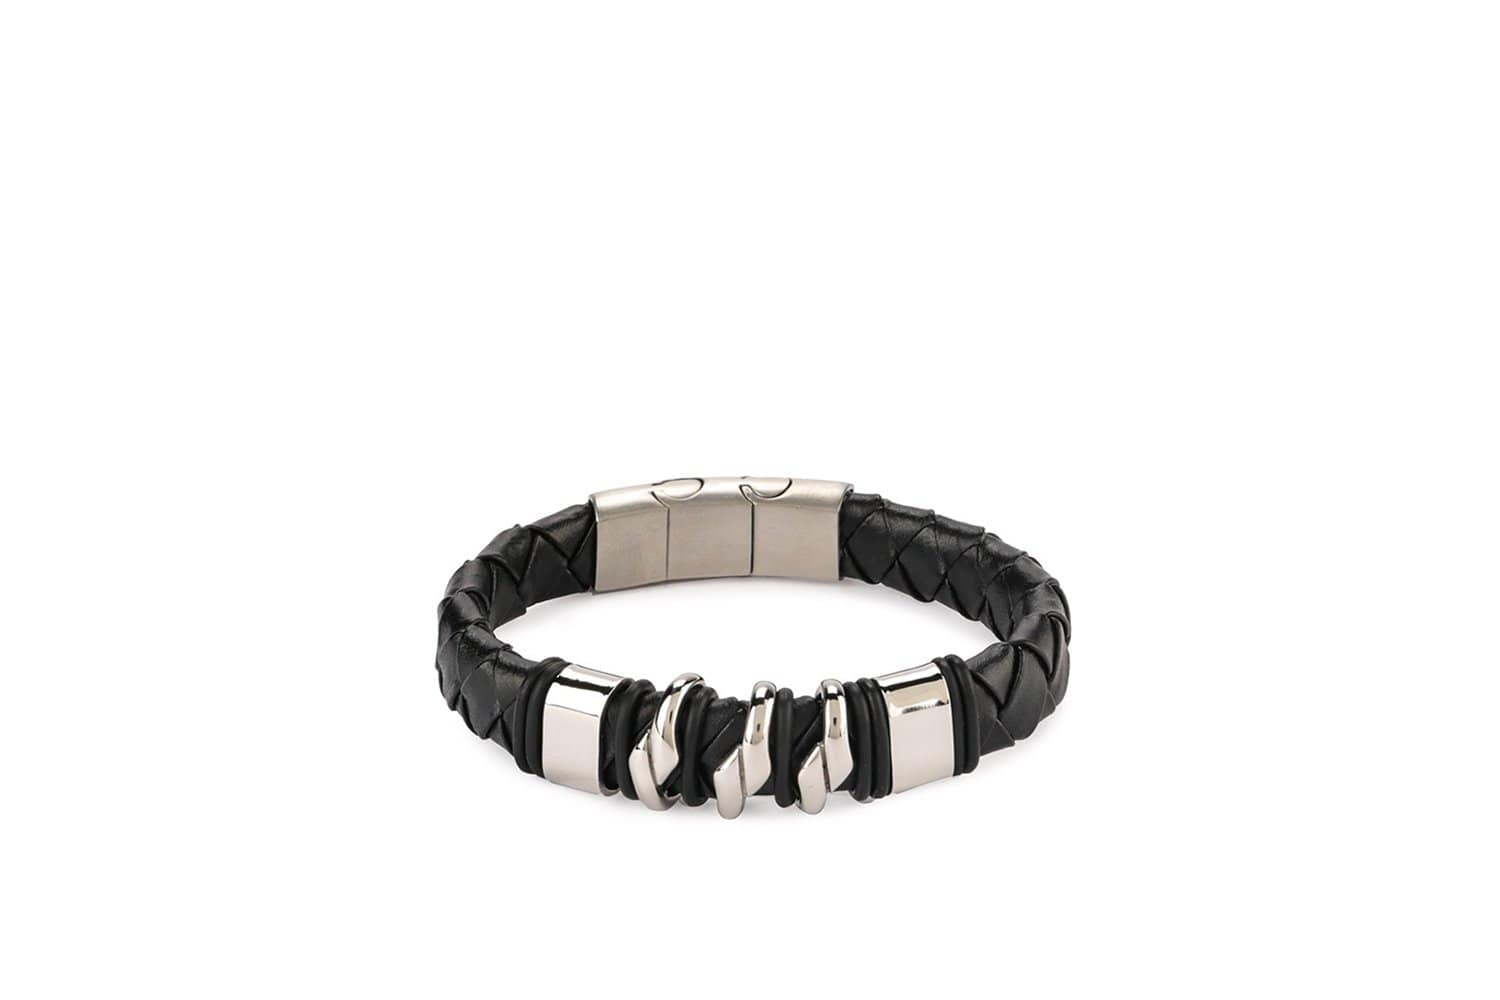 Stainless Woven Leather Bracelet - Black